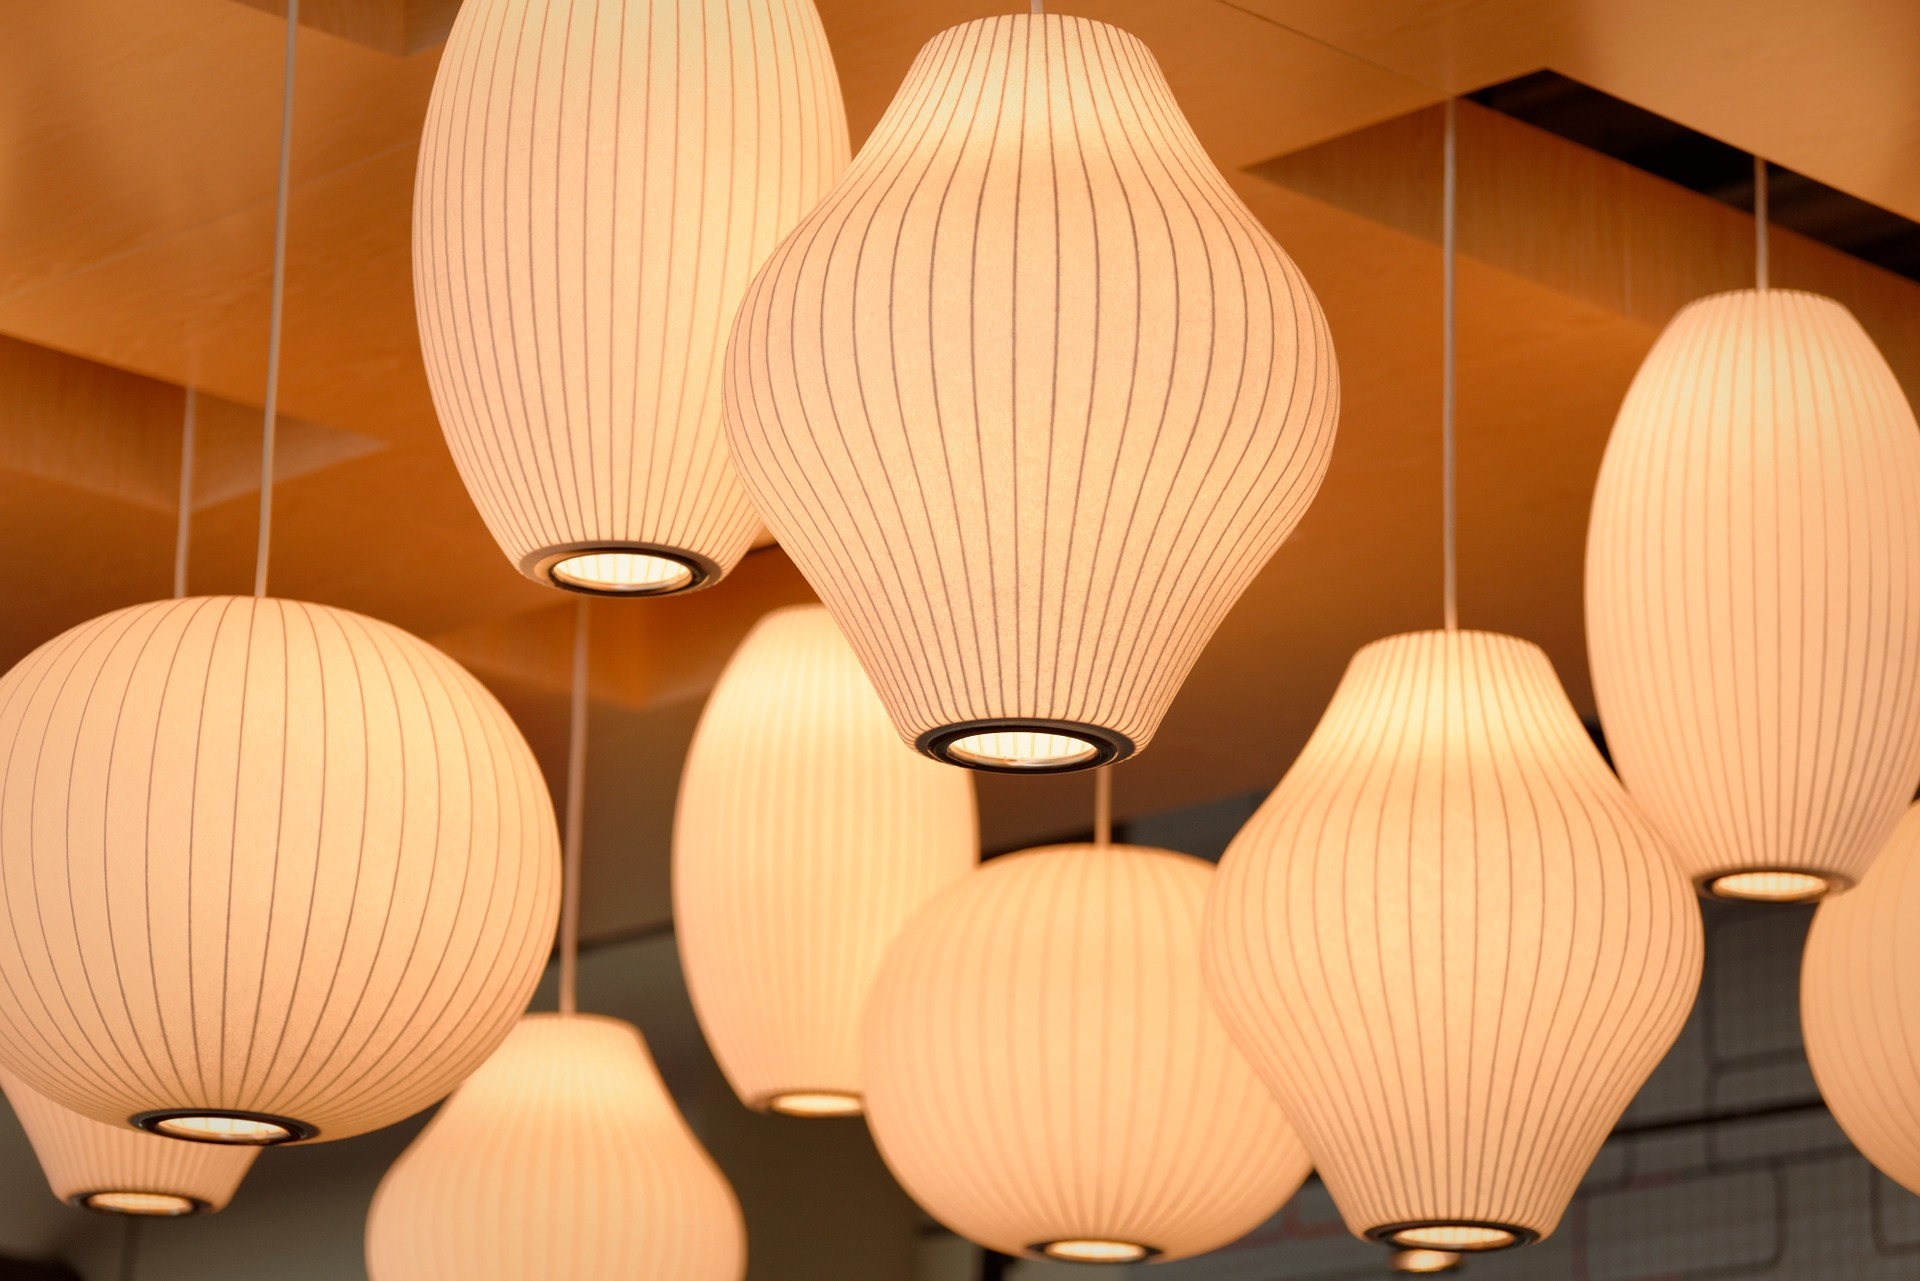 picking the right lamp shade